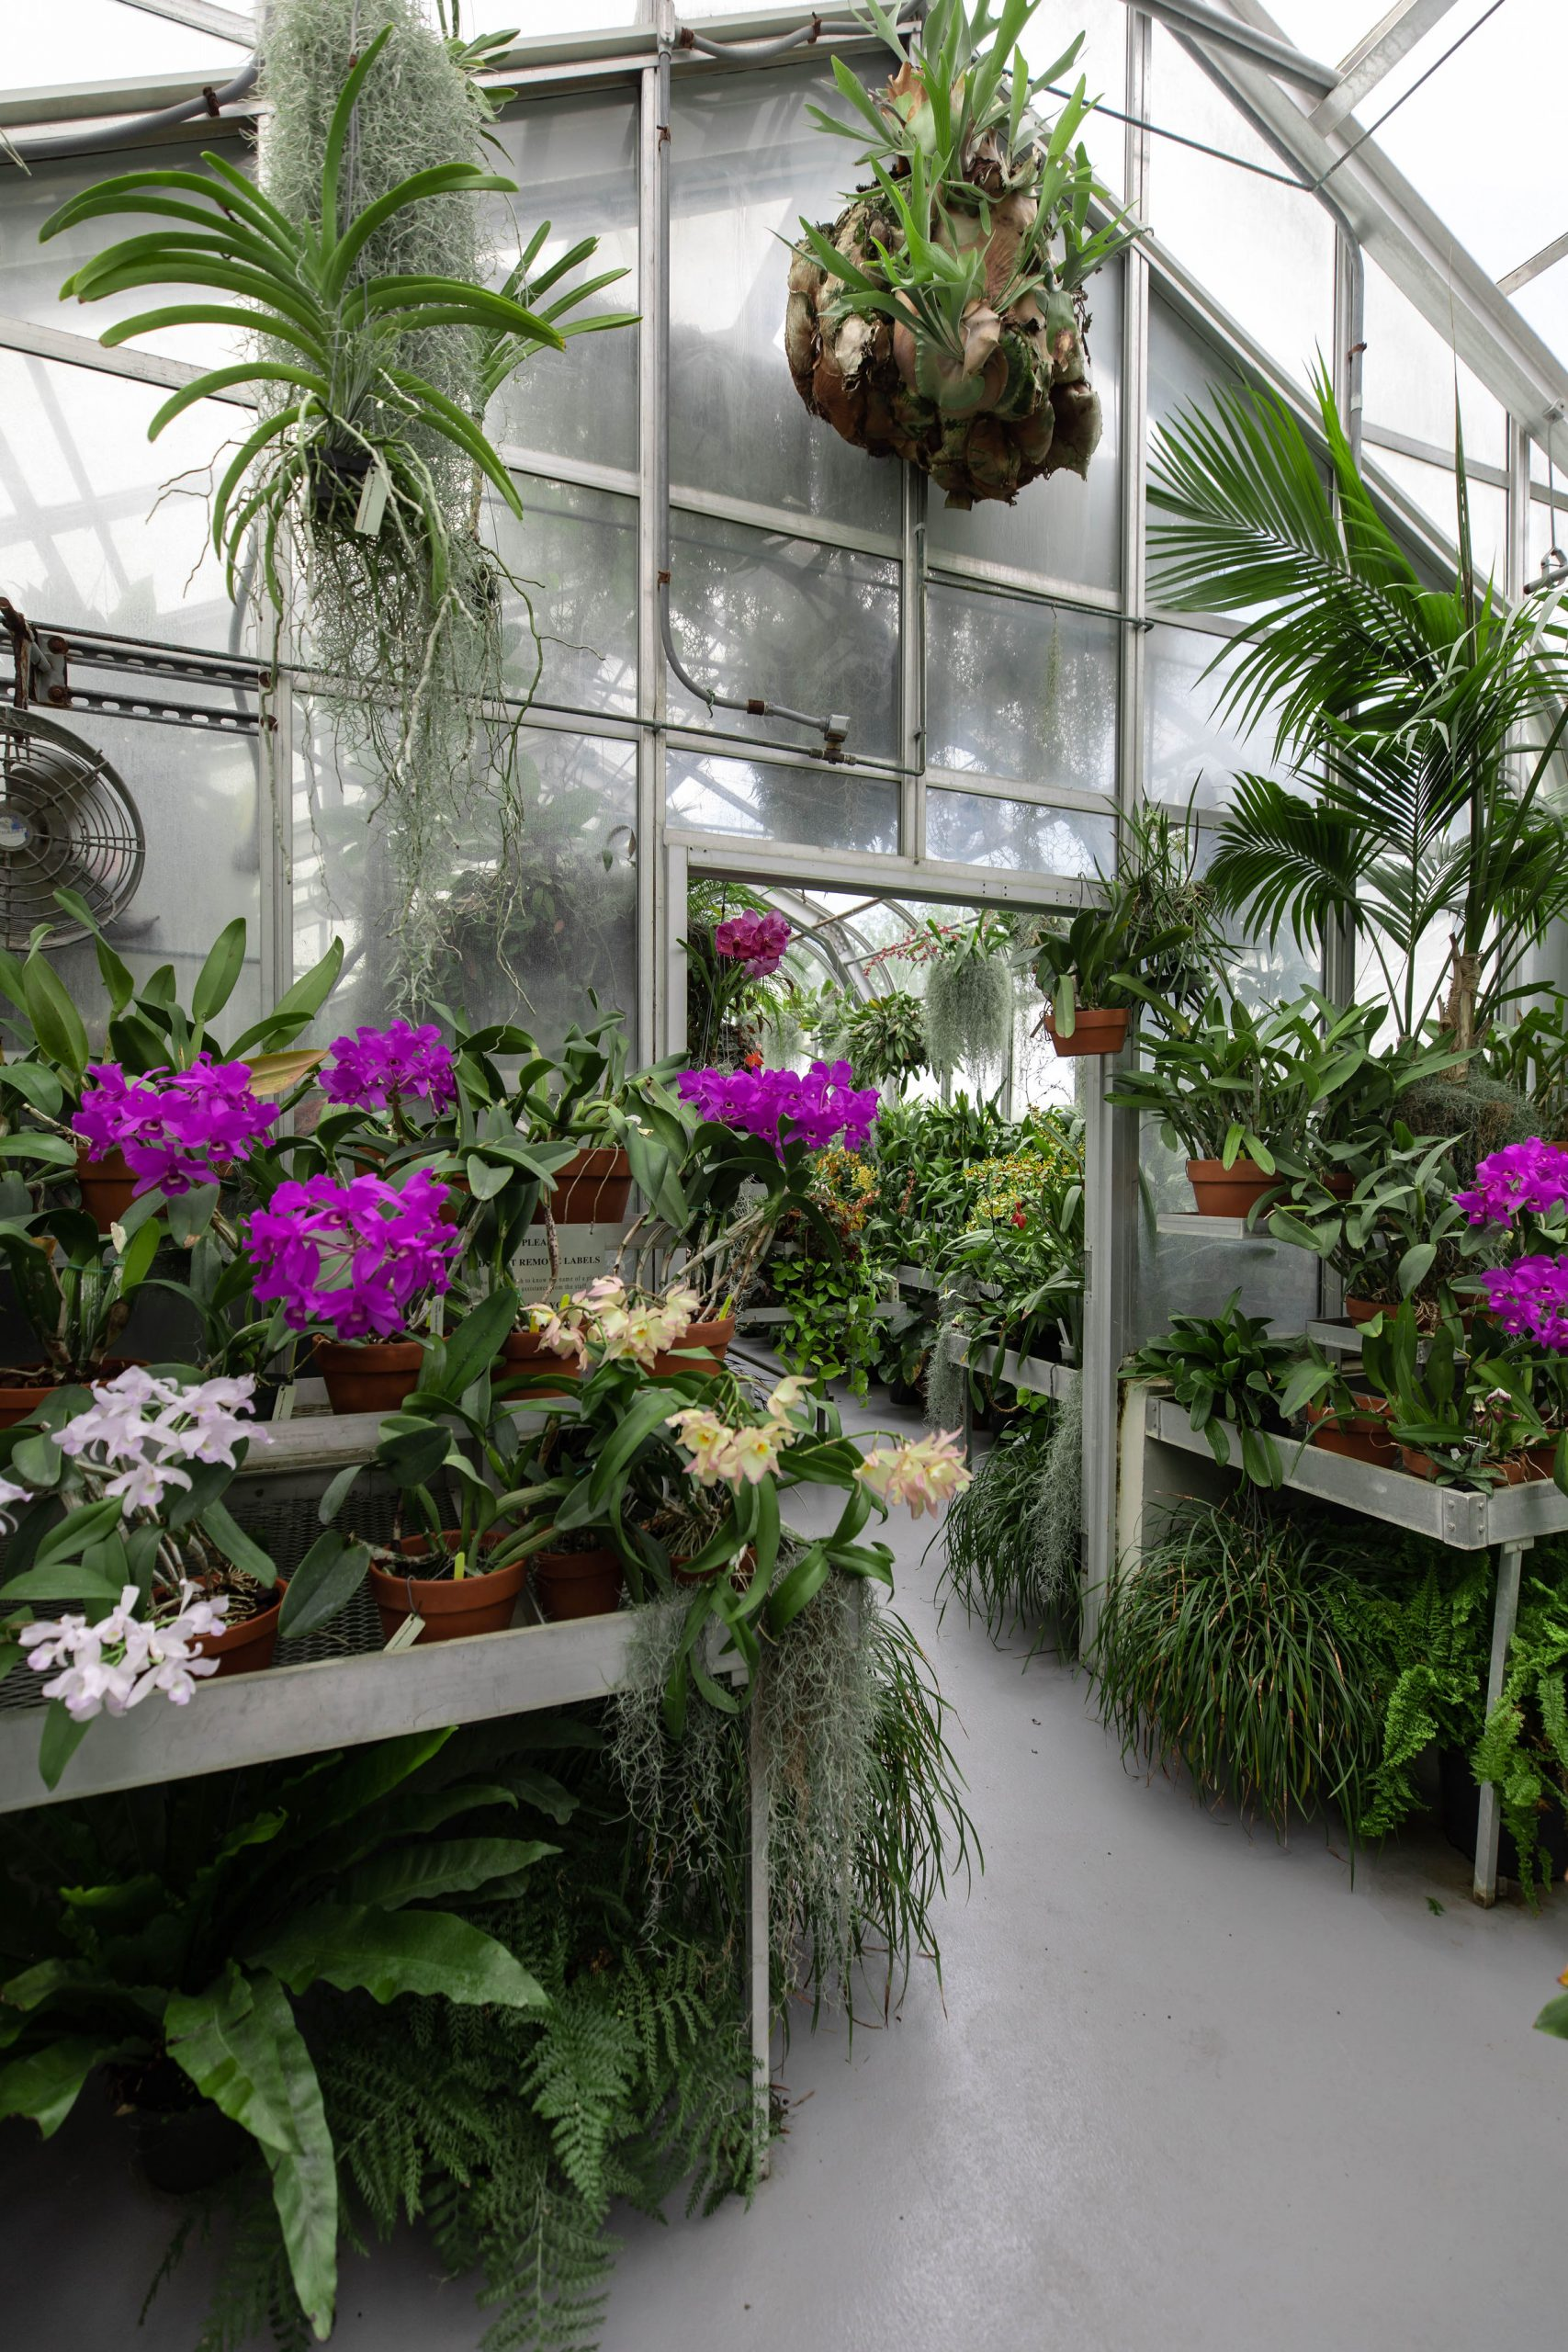 Glasshouse at Hillwood Estate, Museum & Gardens in Washington, D.C. by Luxury Travel Writer and Photographer Annie Fairfax